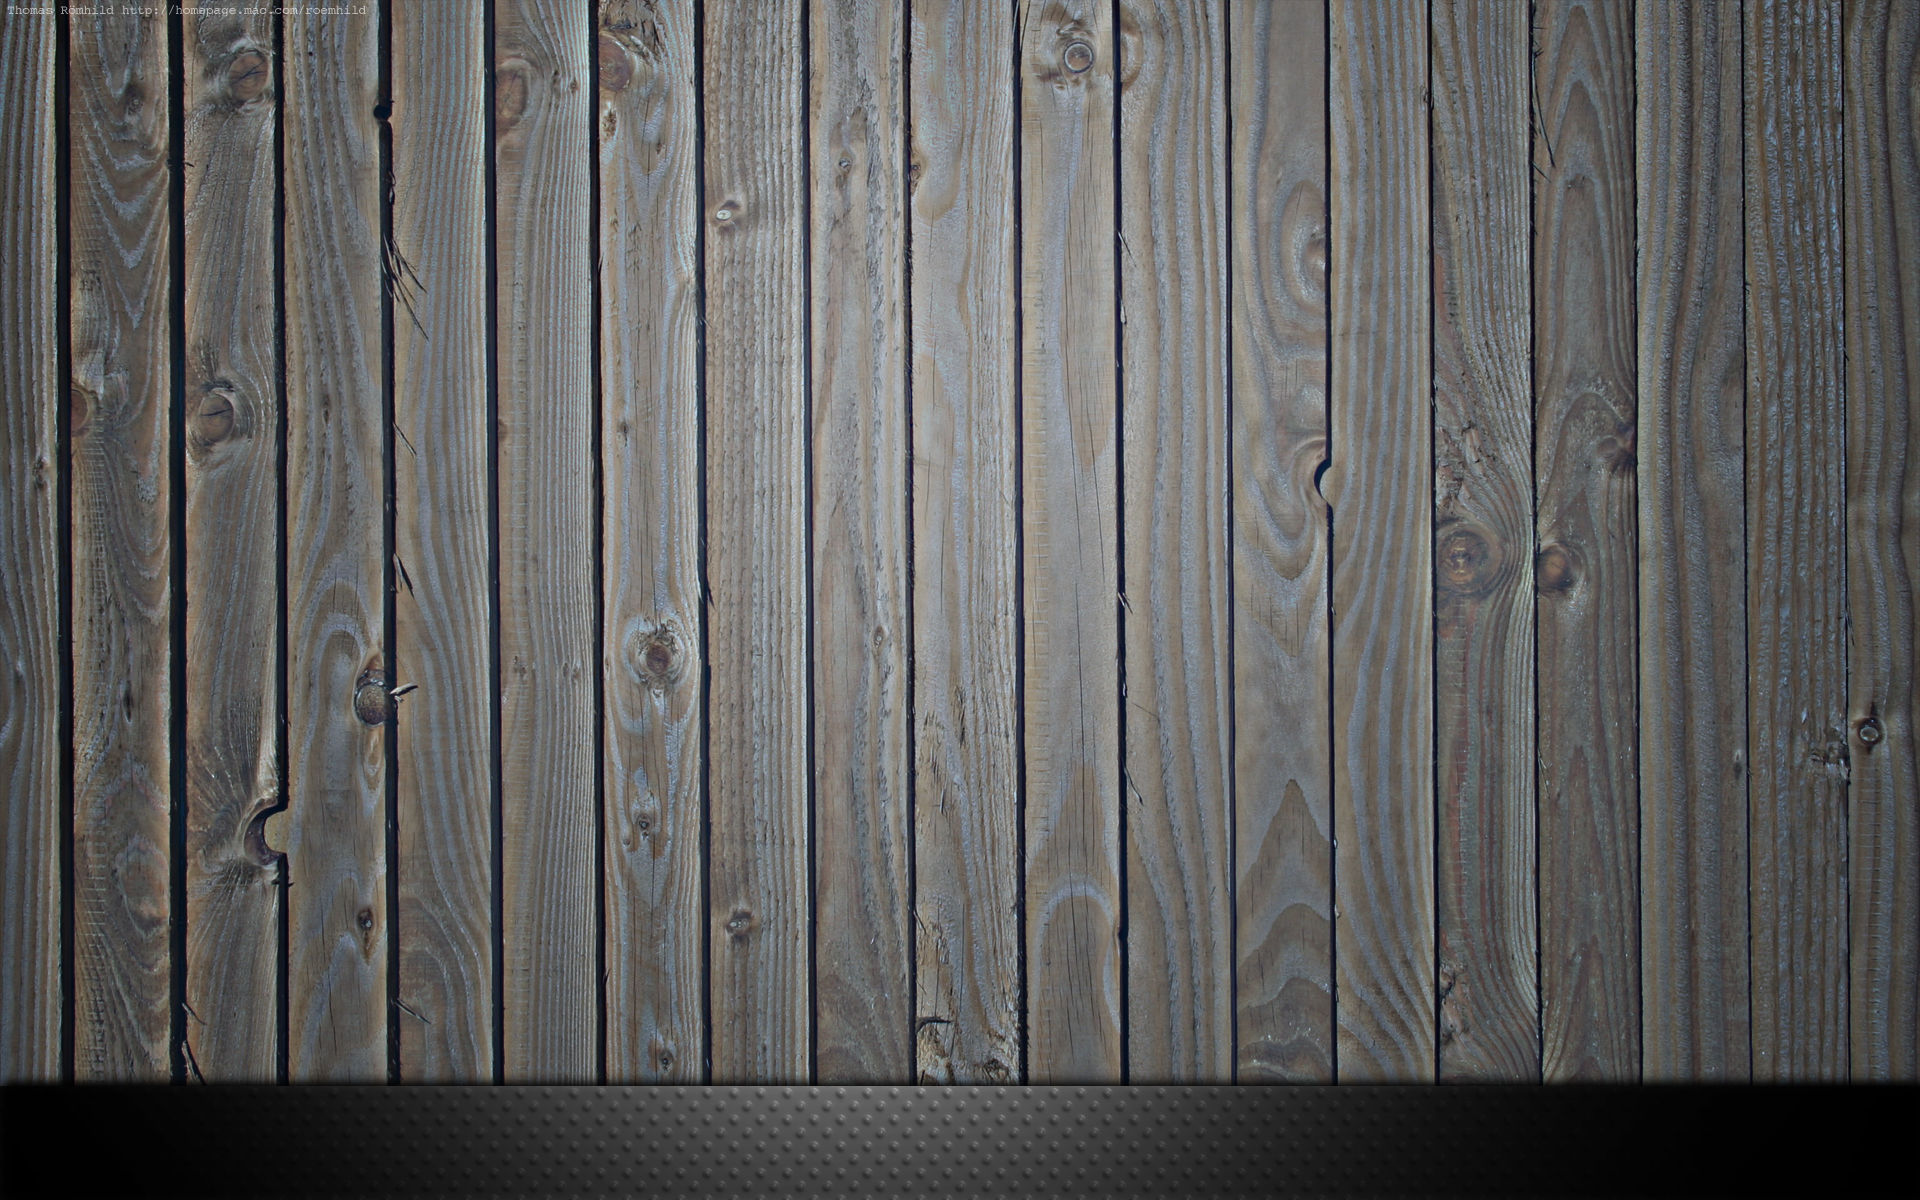 grey wallpaper designs 2015   Grasscloth Wallpaper 1920x1200